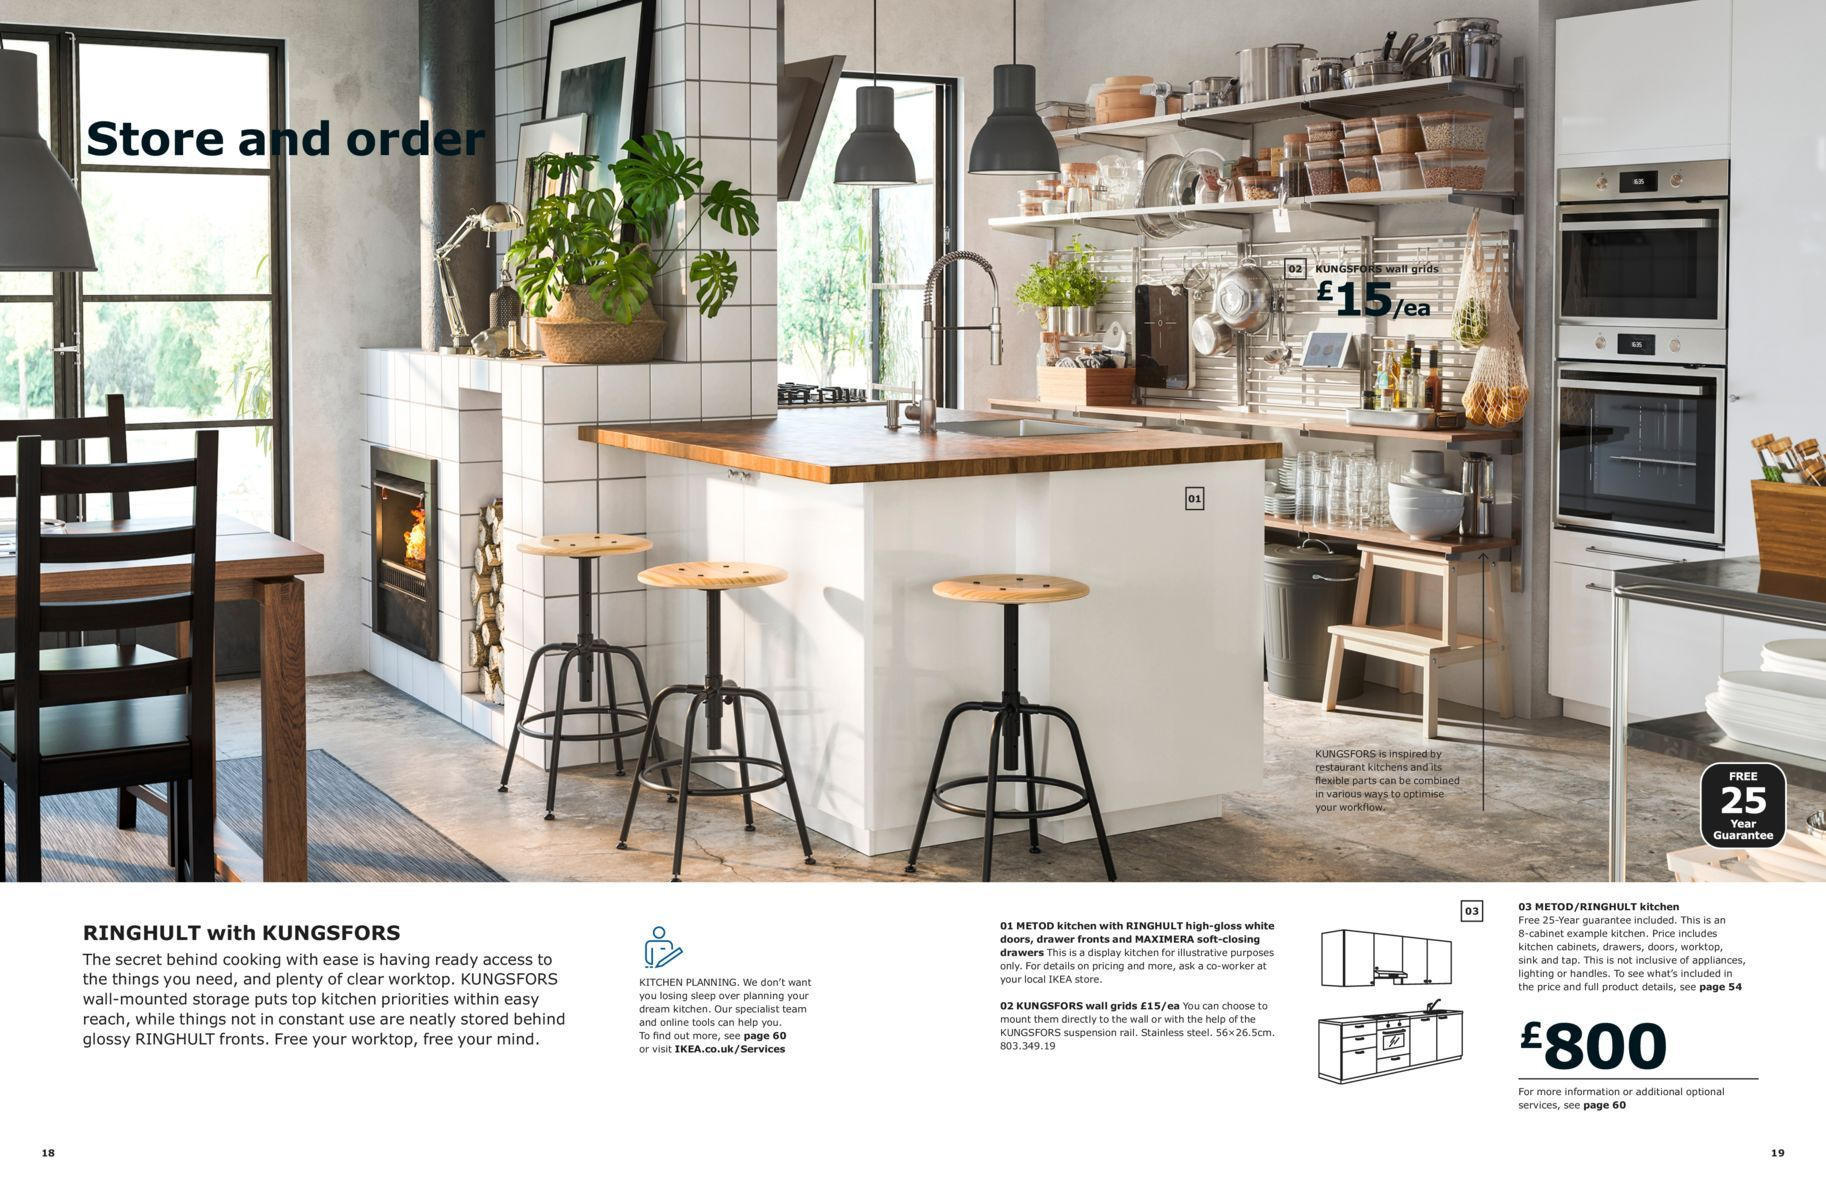 Store and order - Kitchen Brochure 8  Ikea kitchen, Cuisine